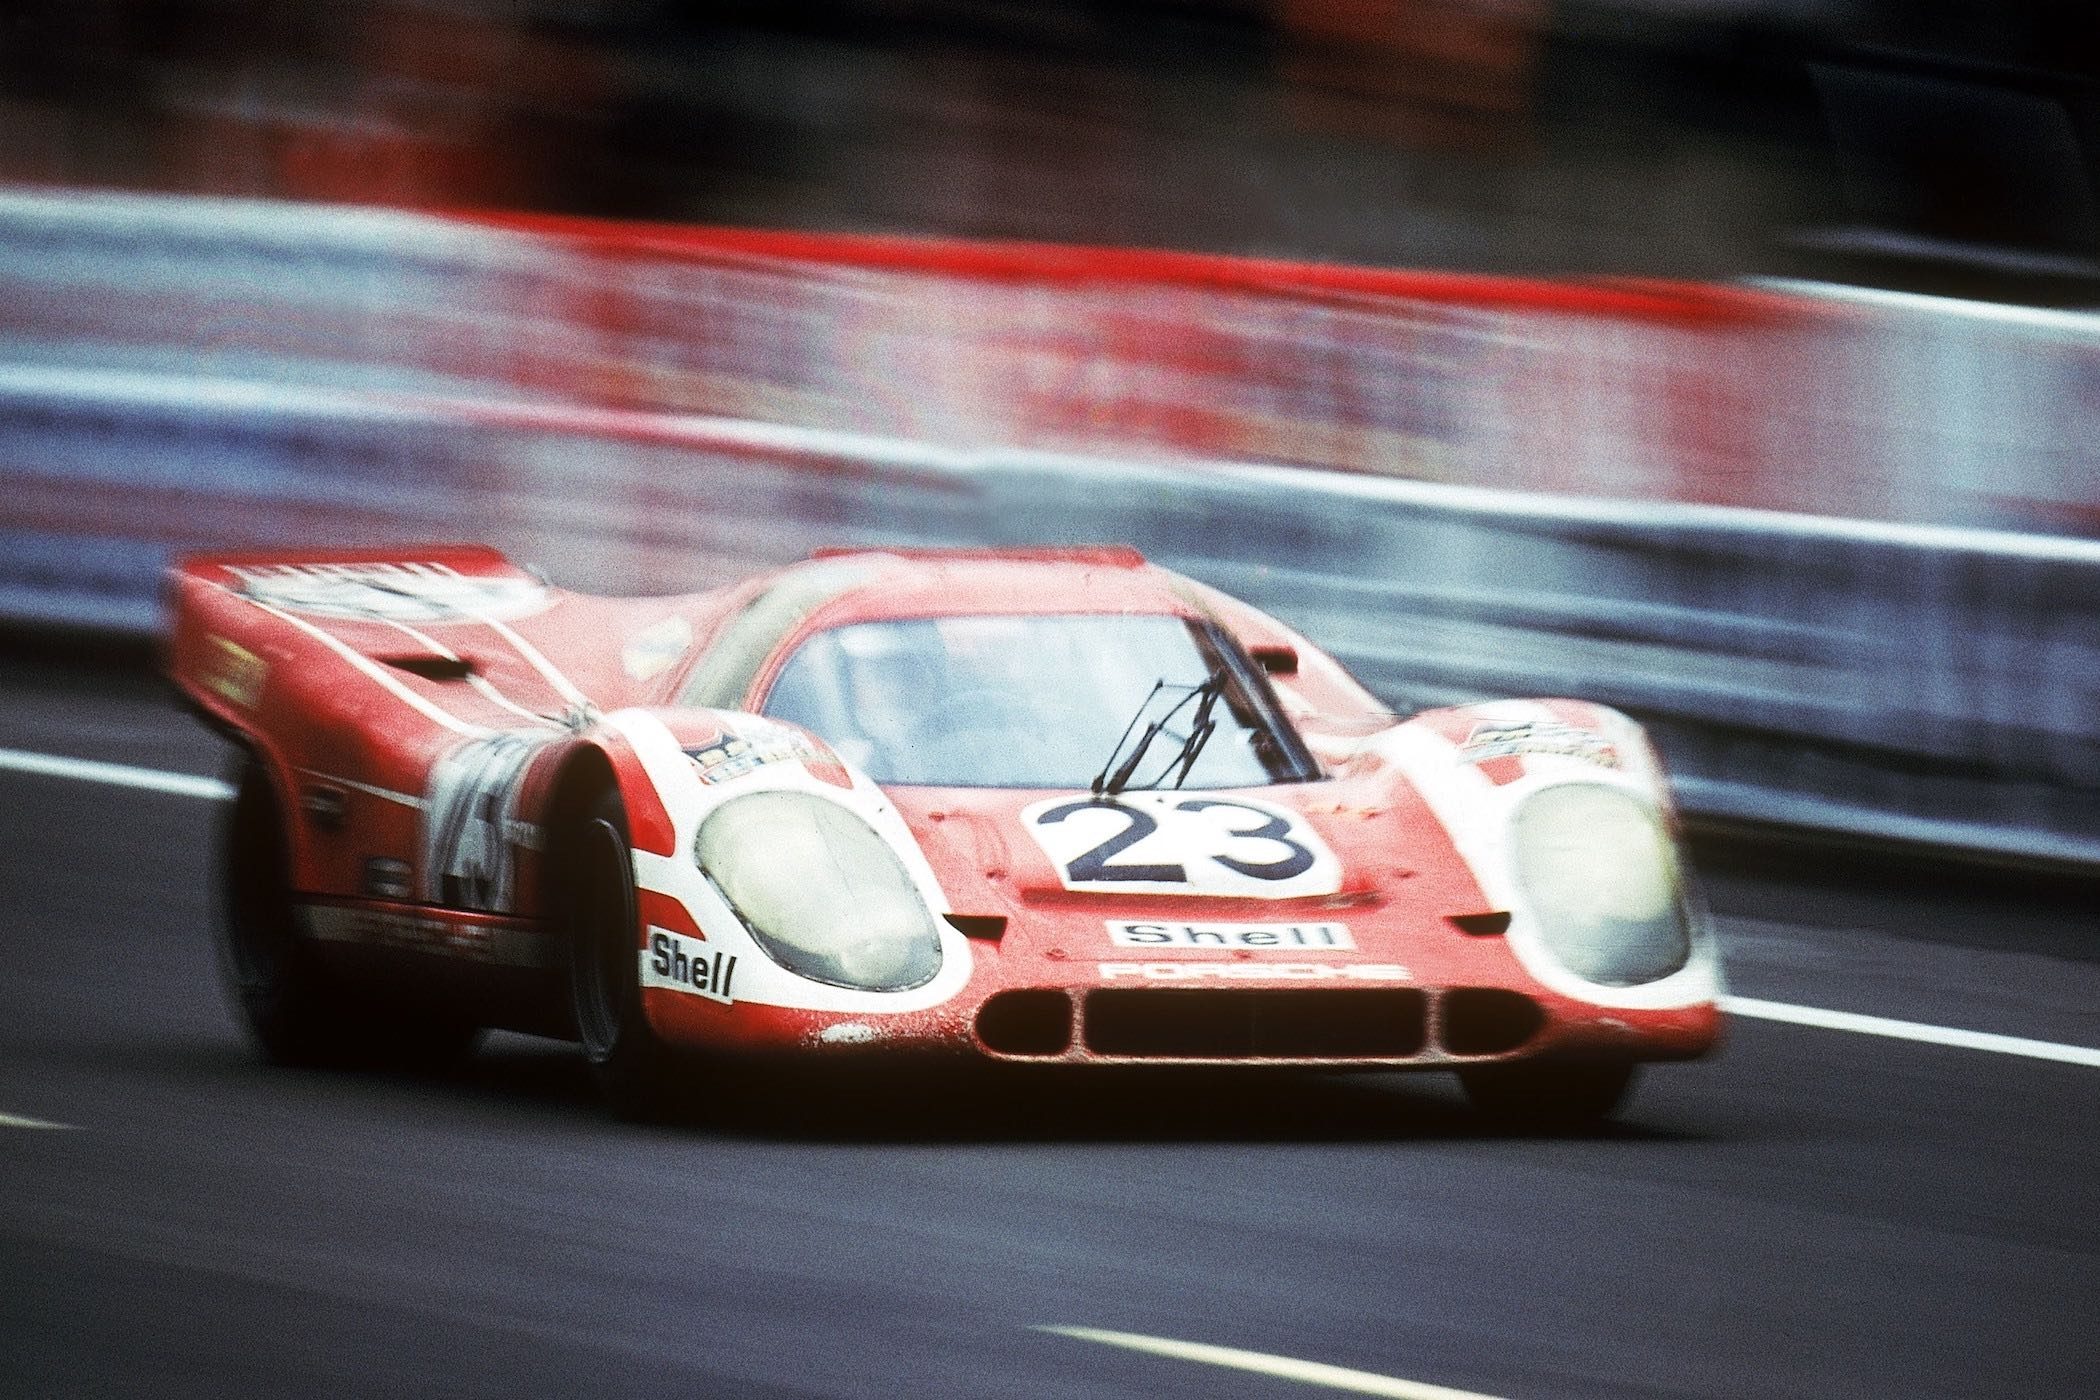 The Petrolhead Corner - An Ode to the Porsche 917 - The Most Iconic Race Car Ever Made